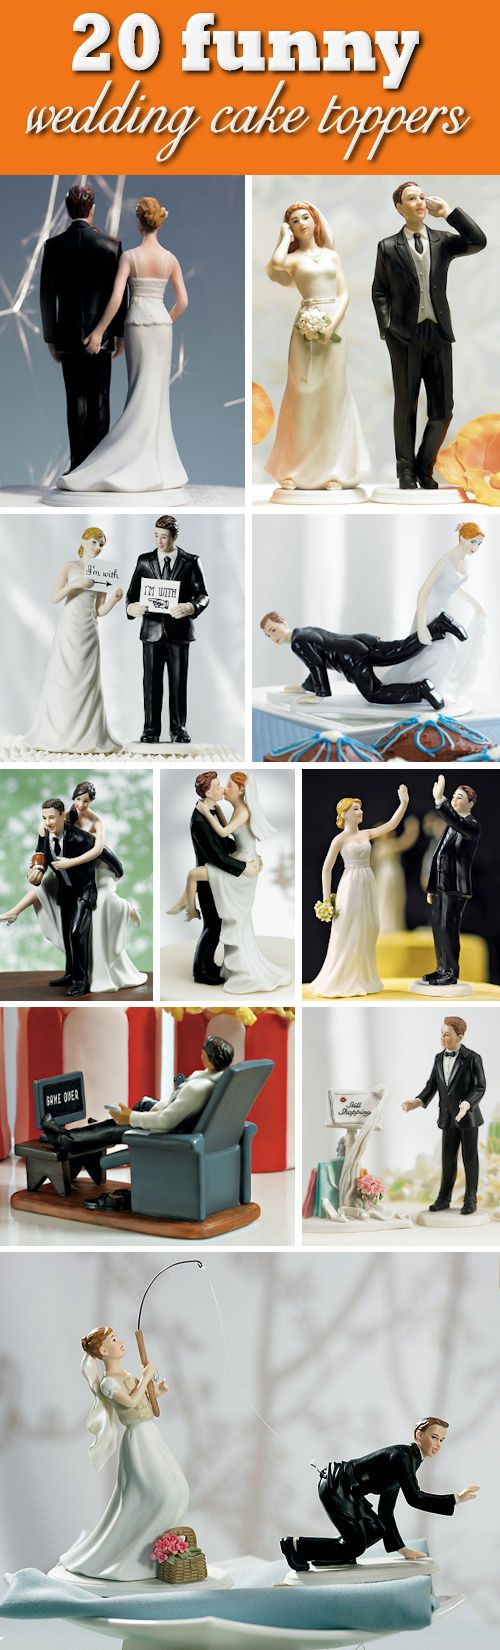 funny cake toppers wedding cake toppers funny 20 Humorous Funny Wedding Cake Toppers that will have your guests laughing